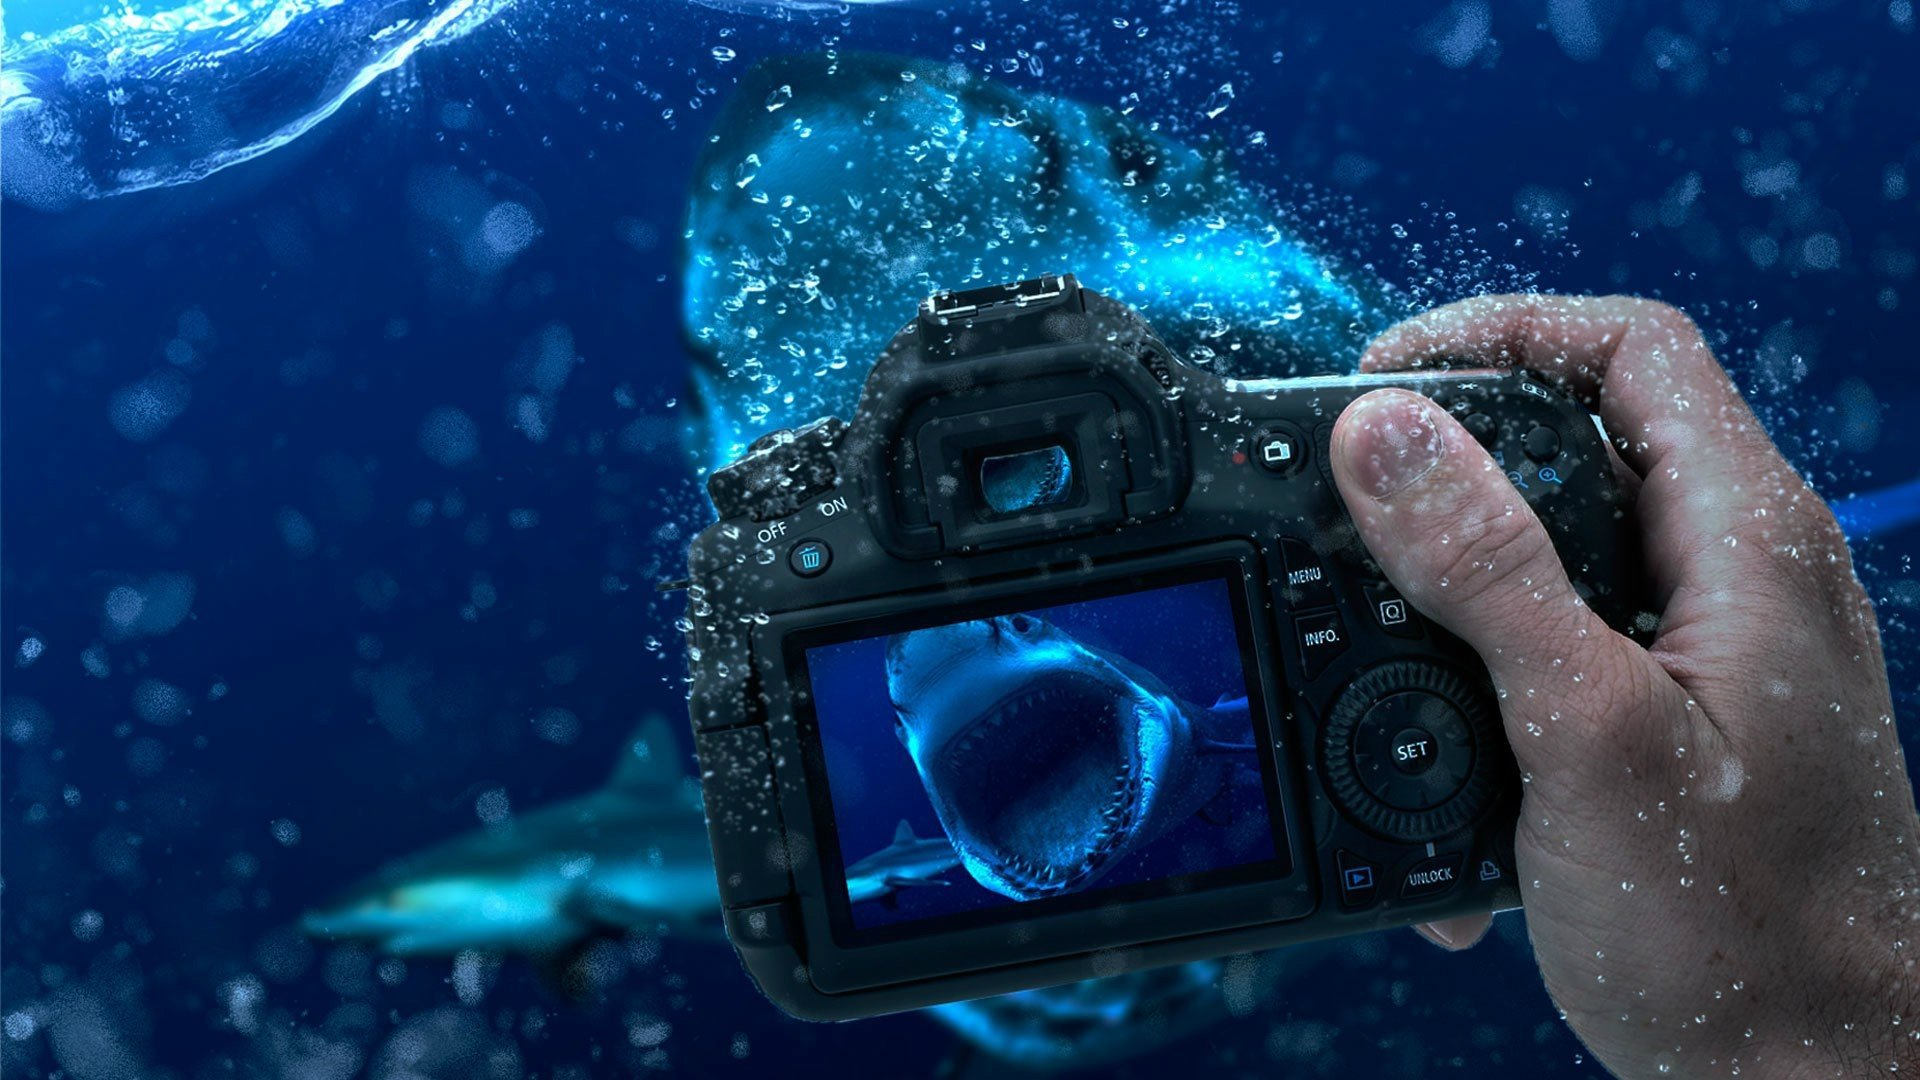 325 Camera Hd Wallpapers Background Images Wallpaper Abyss